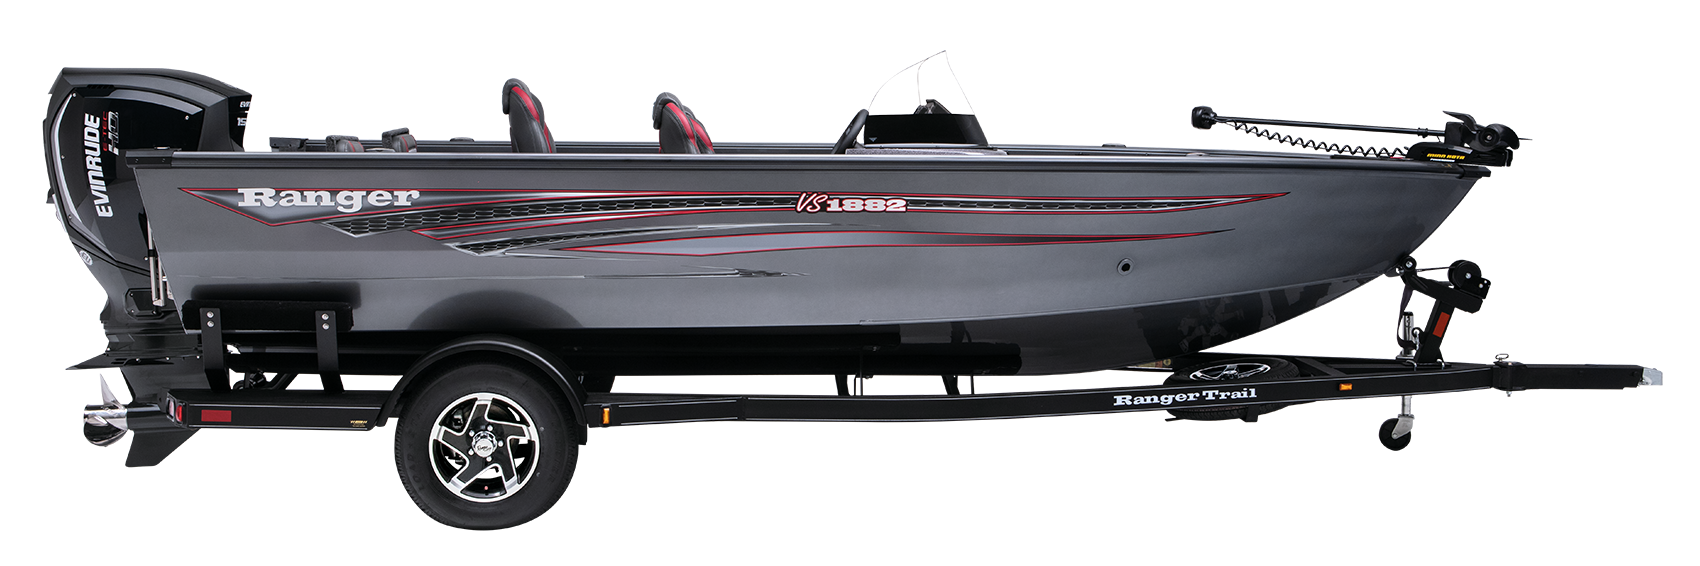 Ranger Ranger VS1882SC Aluminum deep V fishing boat deep V fishing boat